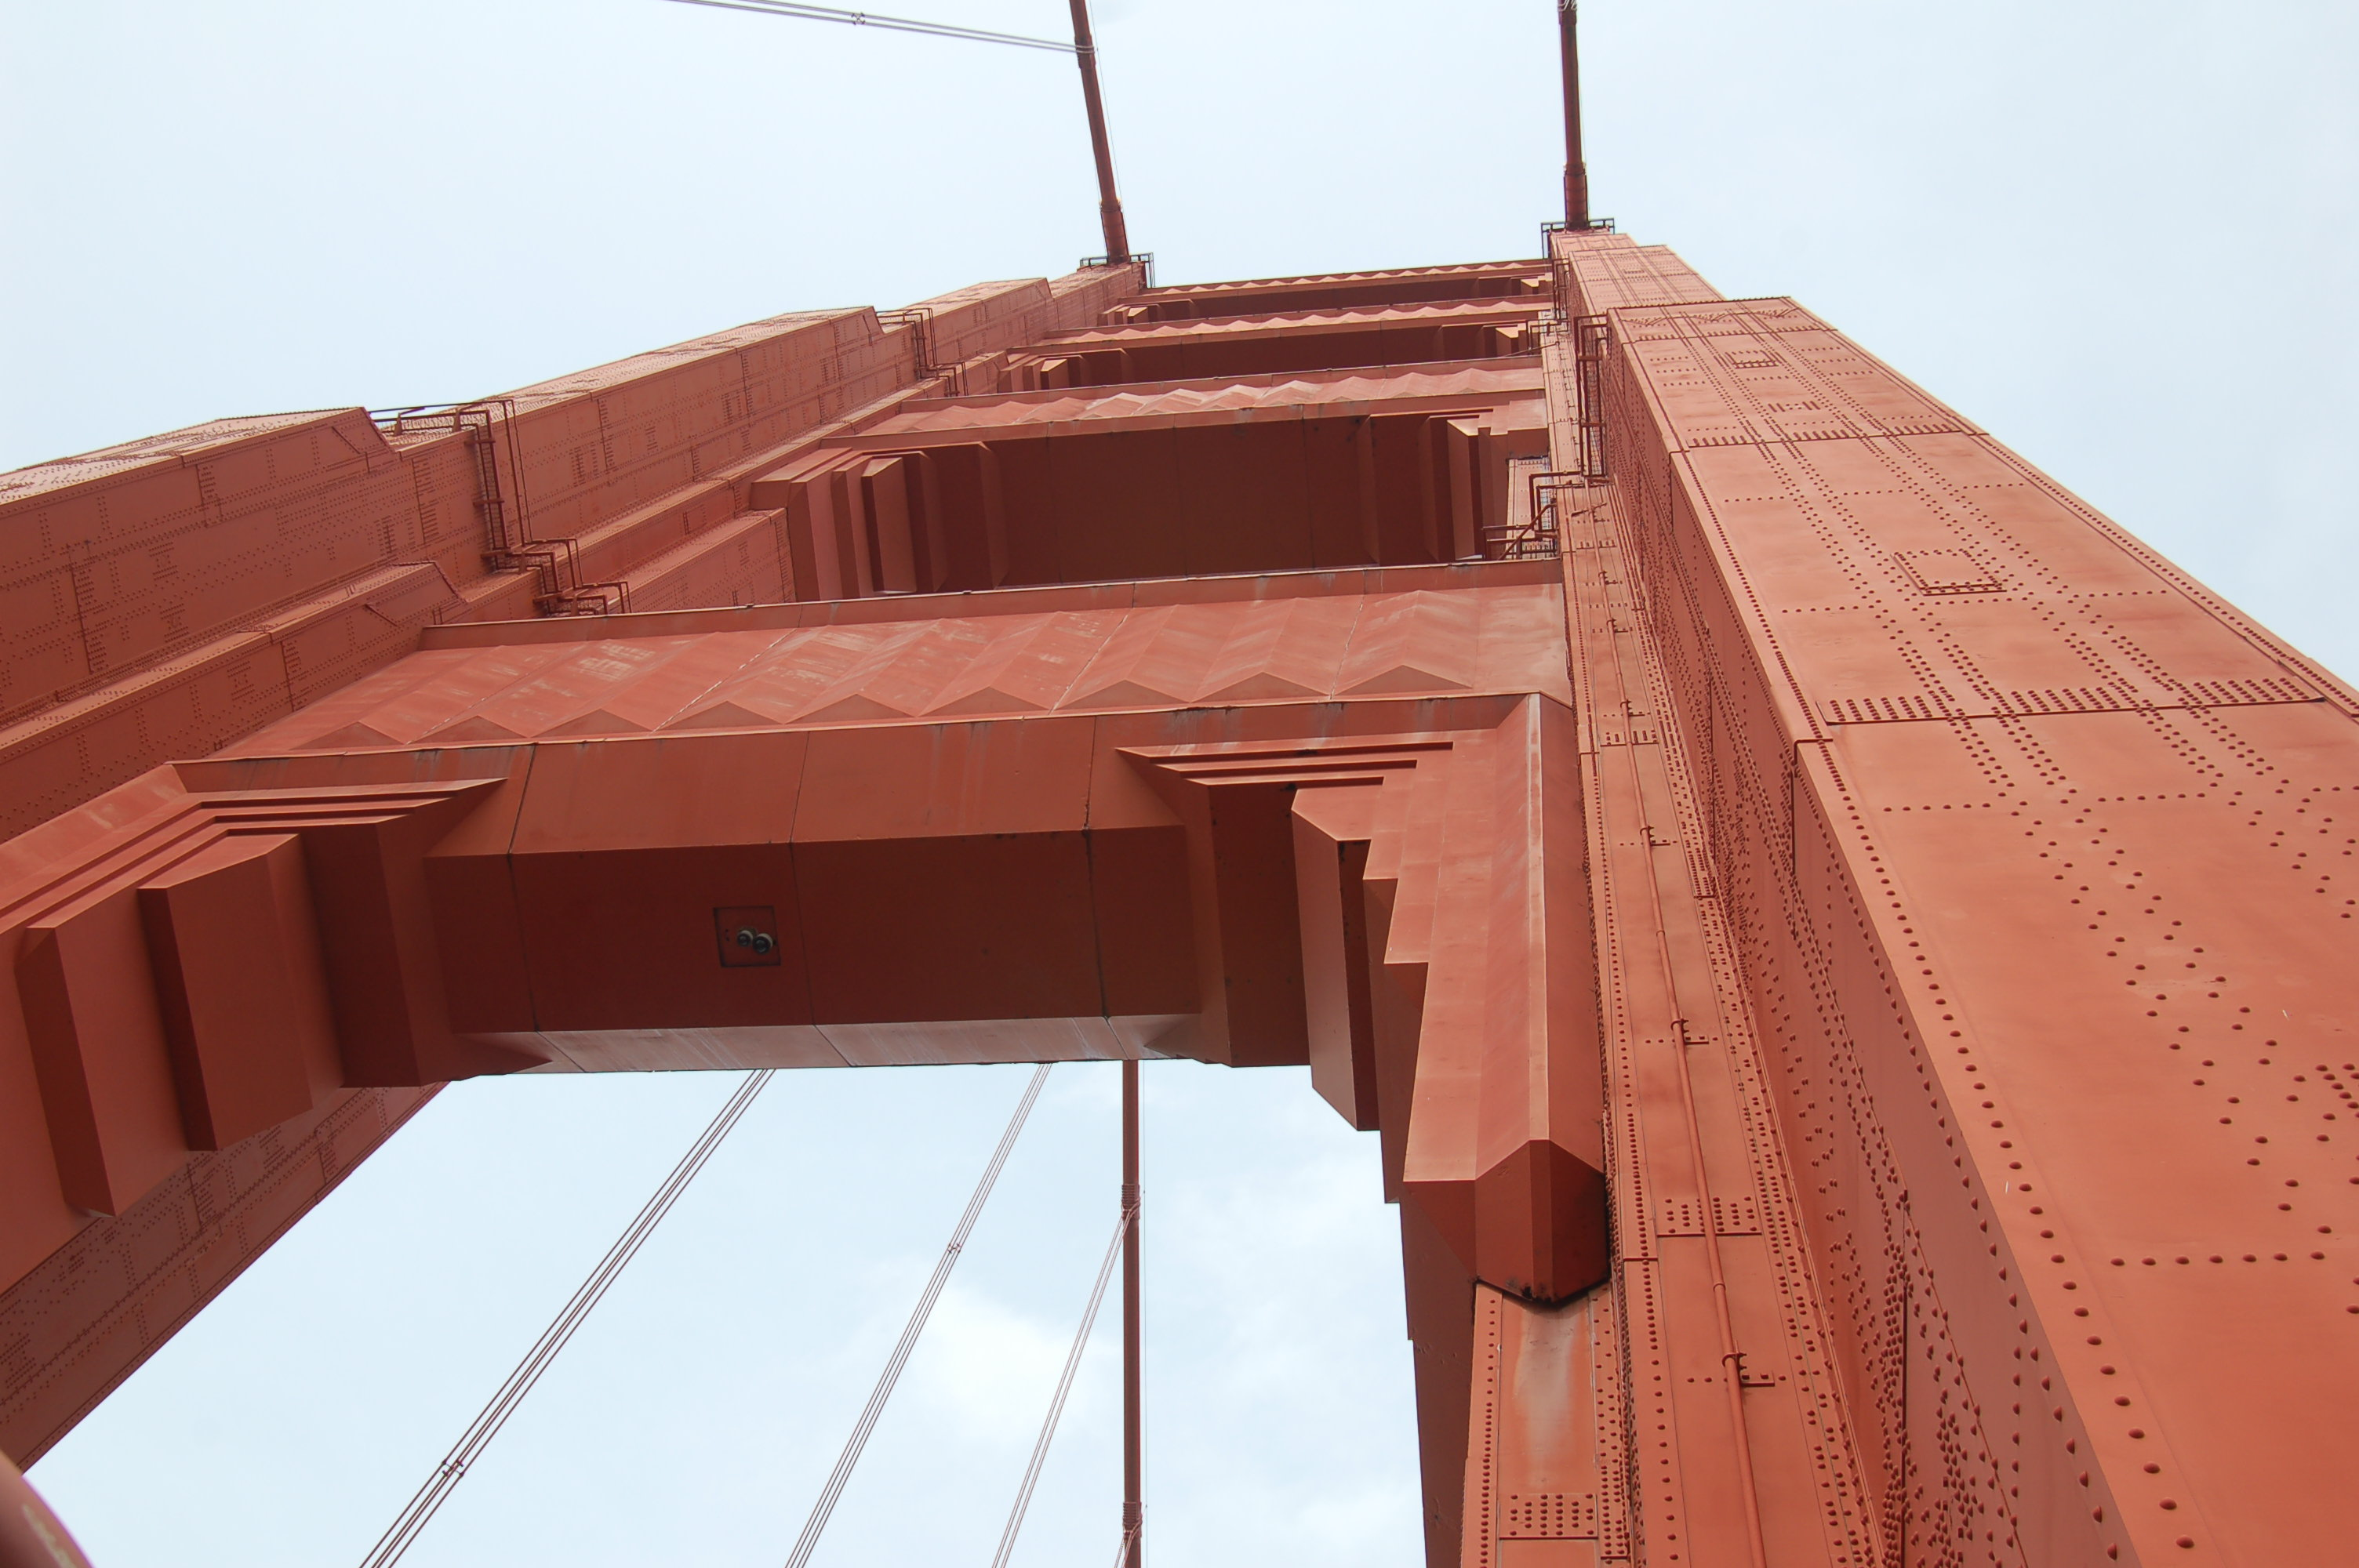 Looking up at the north tower of the Golden Gate Bridge, San Francisco, California